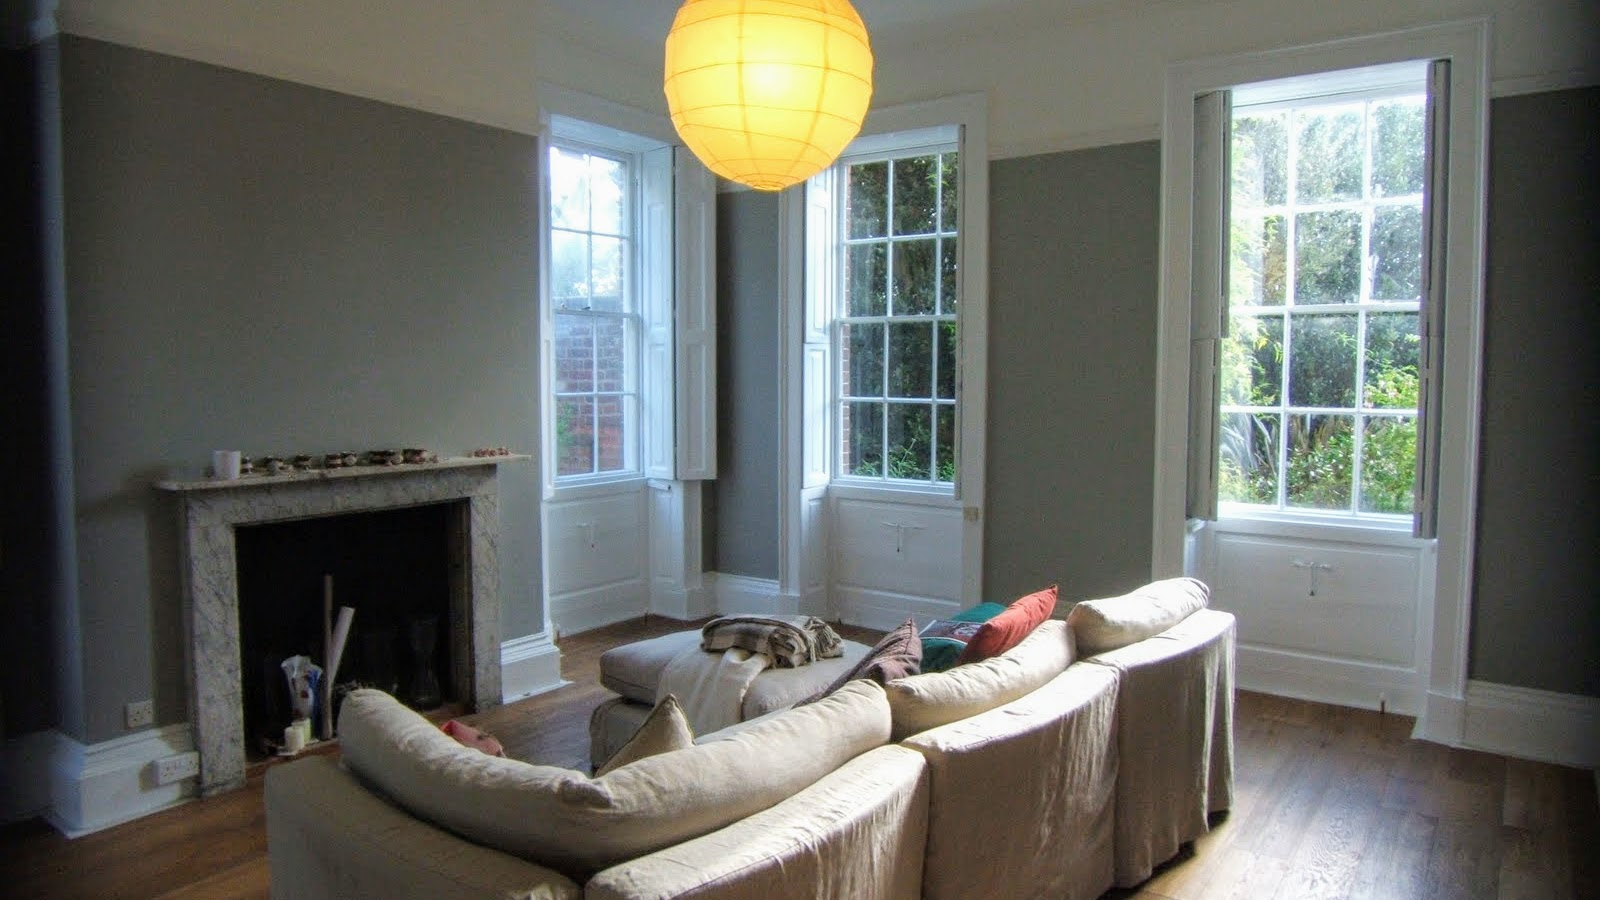 This Living Room Had Dulux Trade Flat Matt On The Ceiling Farrow And Ball Lamp Grey Walls Superb Sikkens Satura BL Woodwork